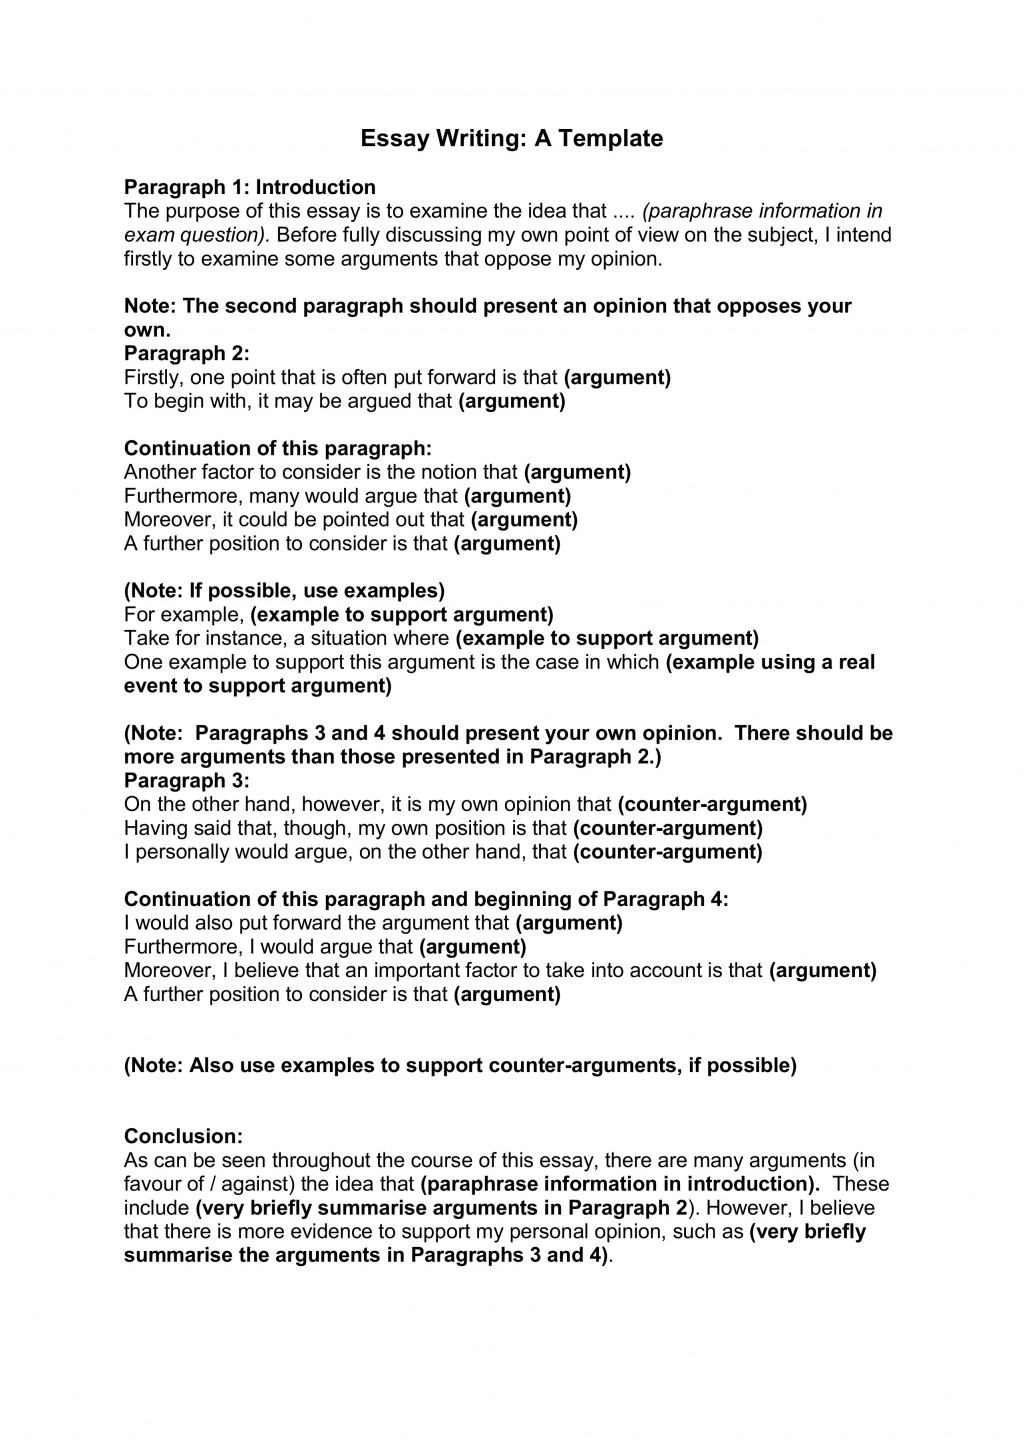 004 Opinion Essay Topics Writing Template For Part Sensational Essays 5th Grade Prompts Middle School 8th Large